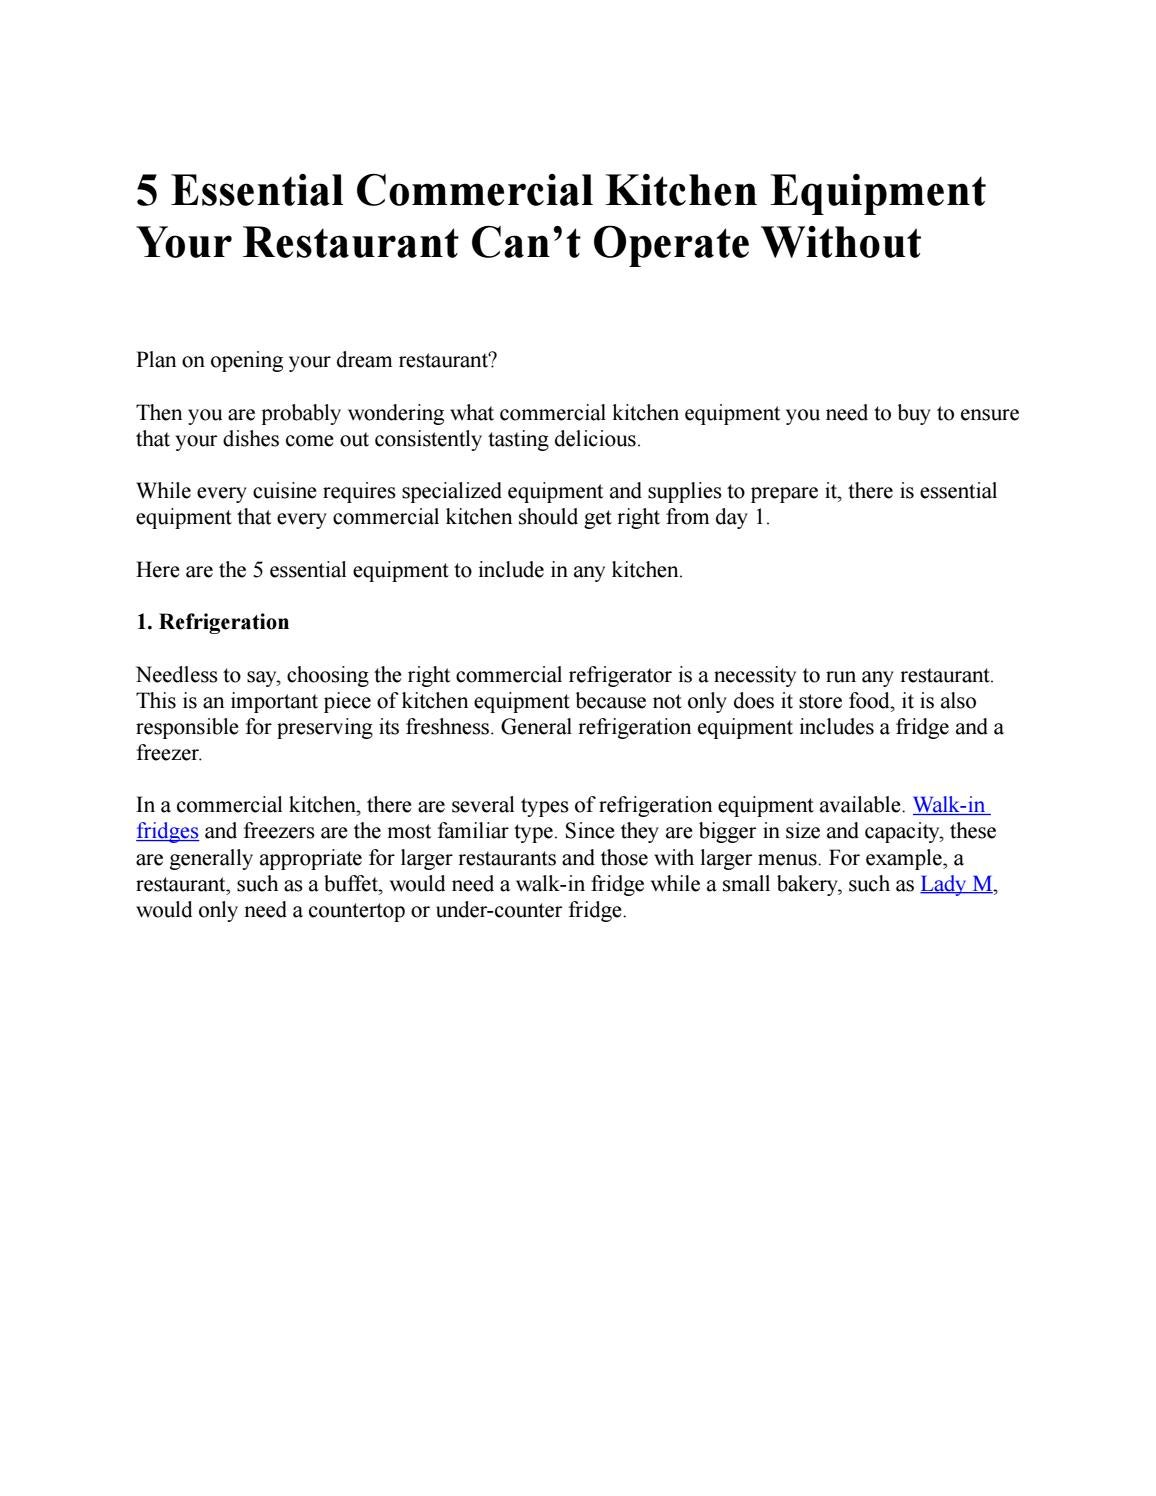 5 Essential Commercial Kitchen Equipment Your Restaurant Can T